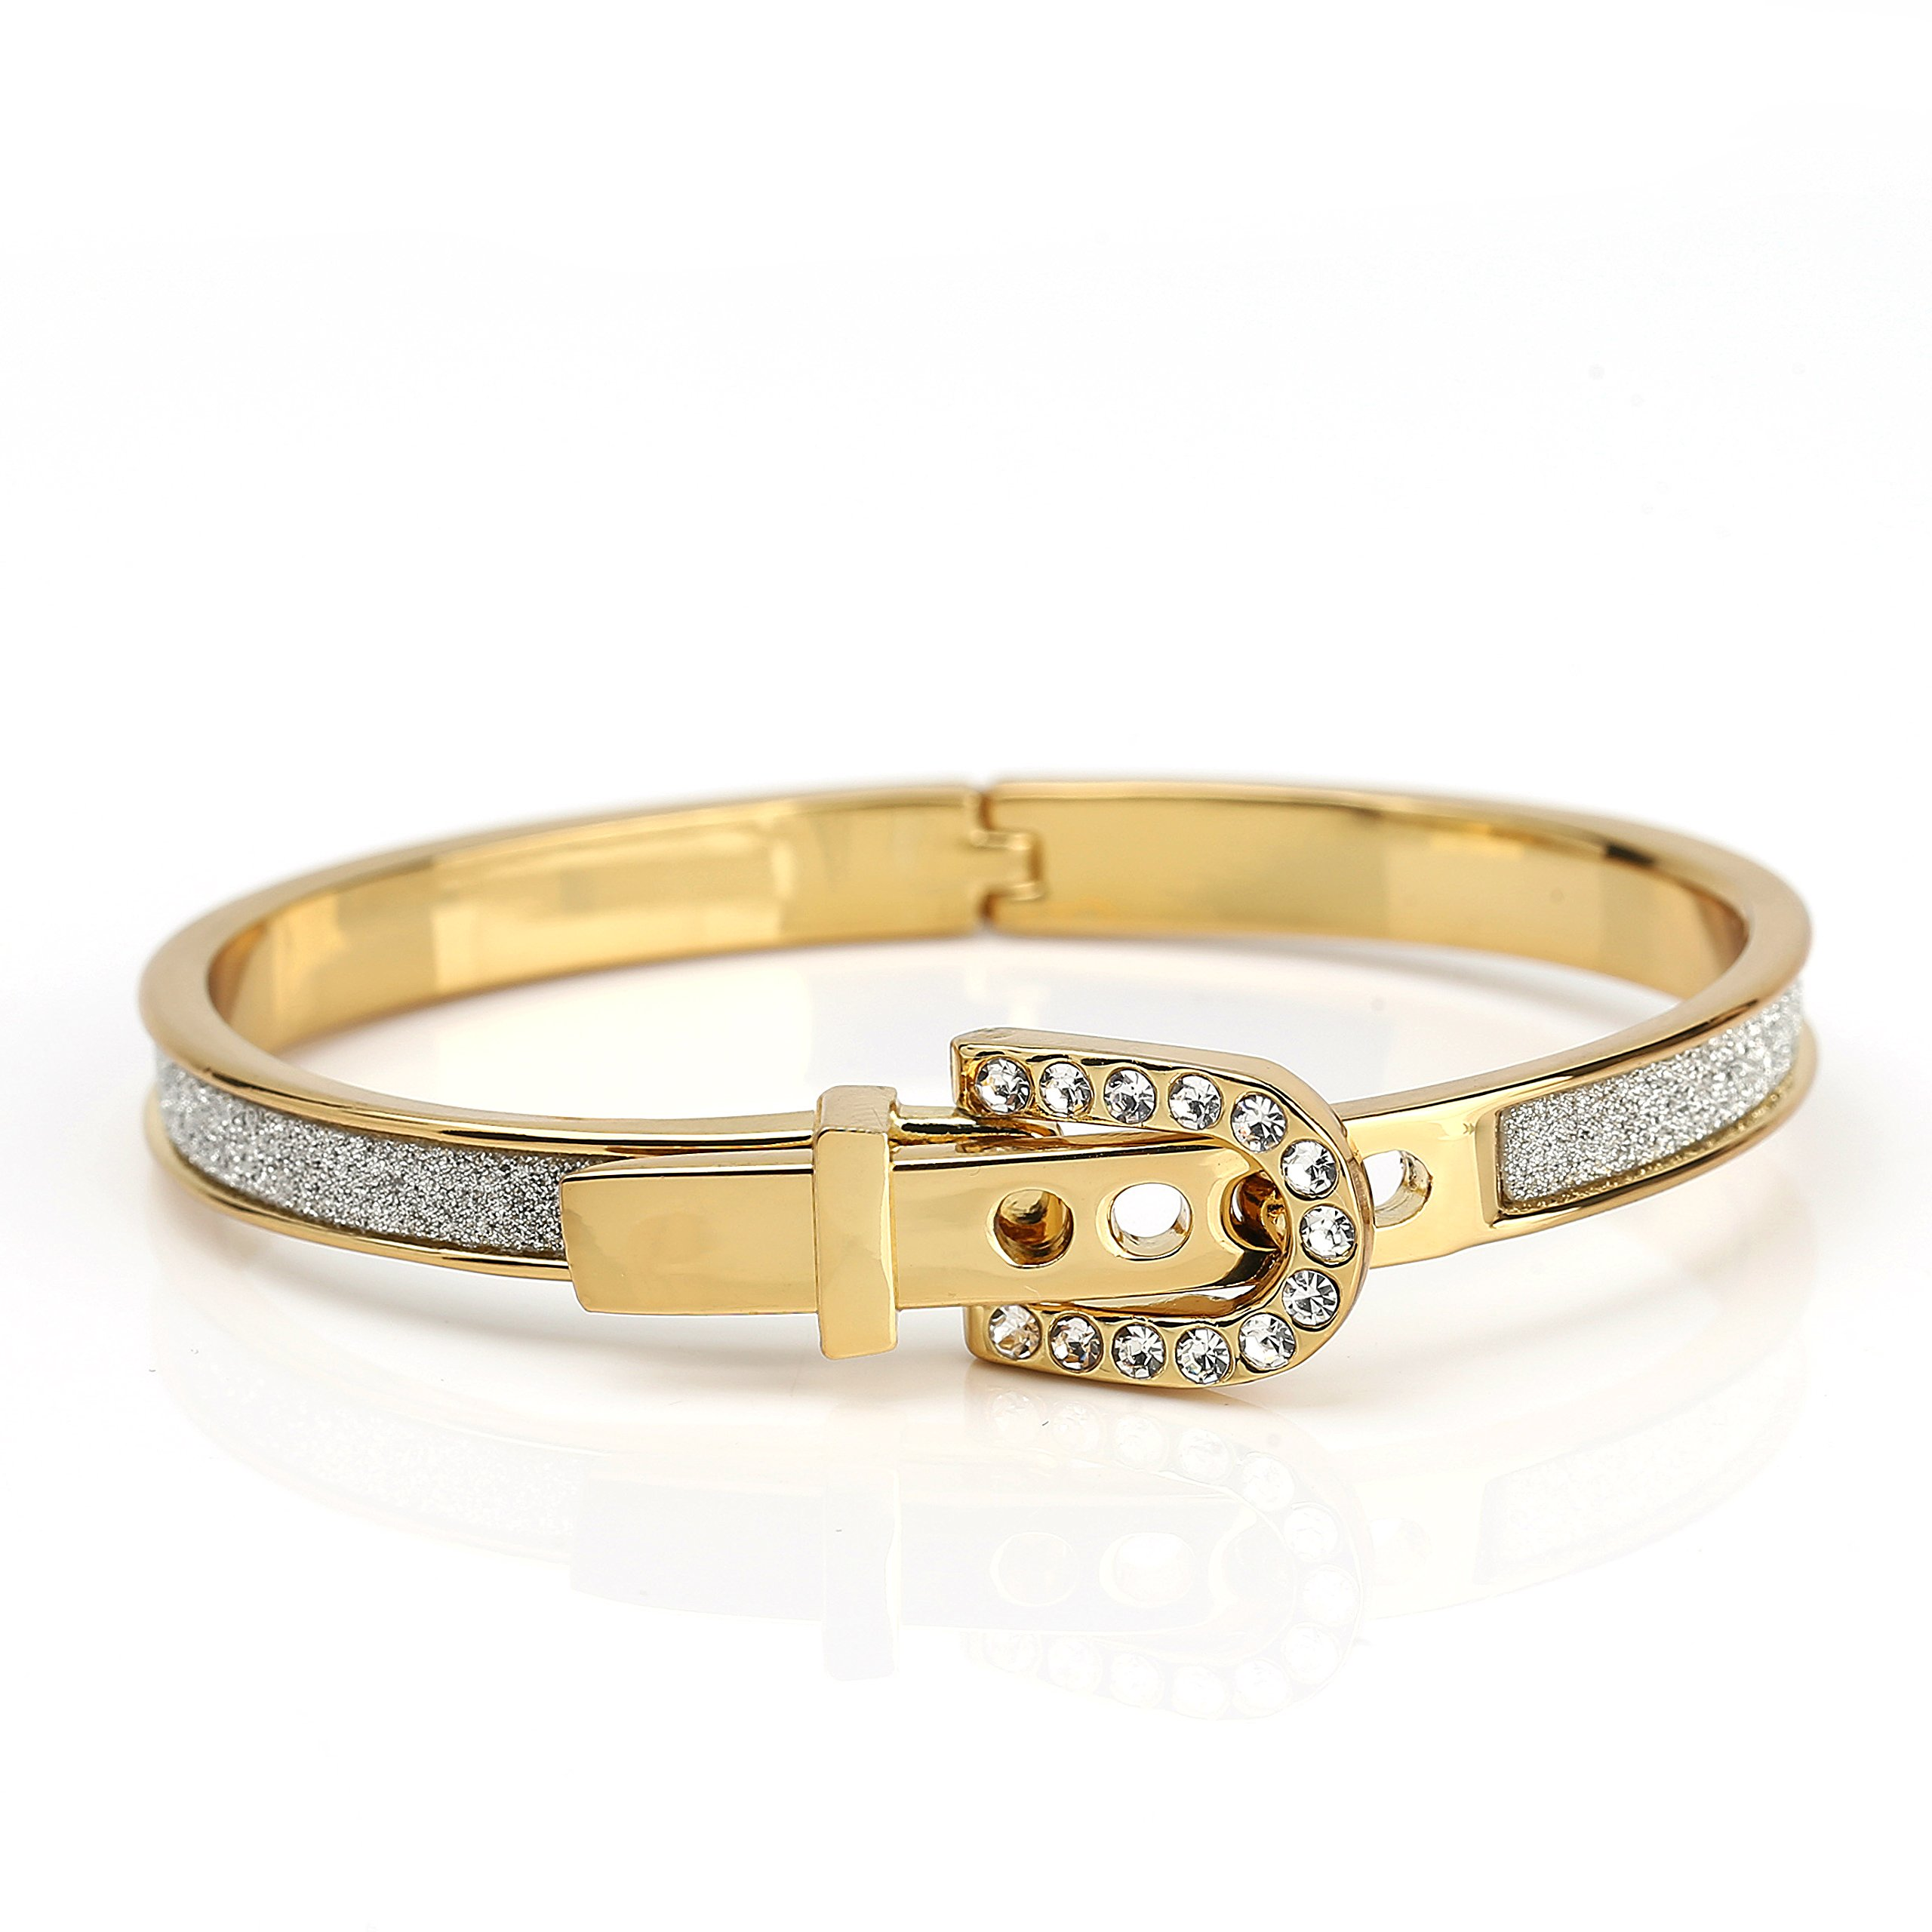 United Elegance - Trendsetting Gold Tone Hinged Bangle Bracelet with Buckle Clasp, Sparkling Swarovski Style Crystals and Shimmering Inlay